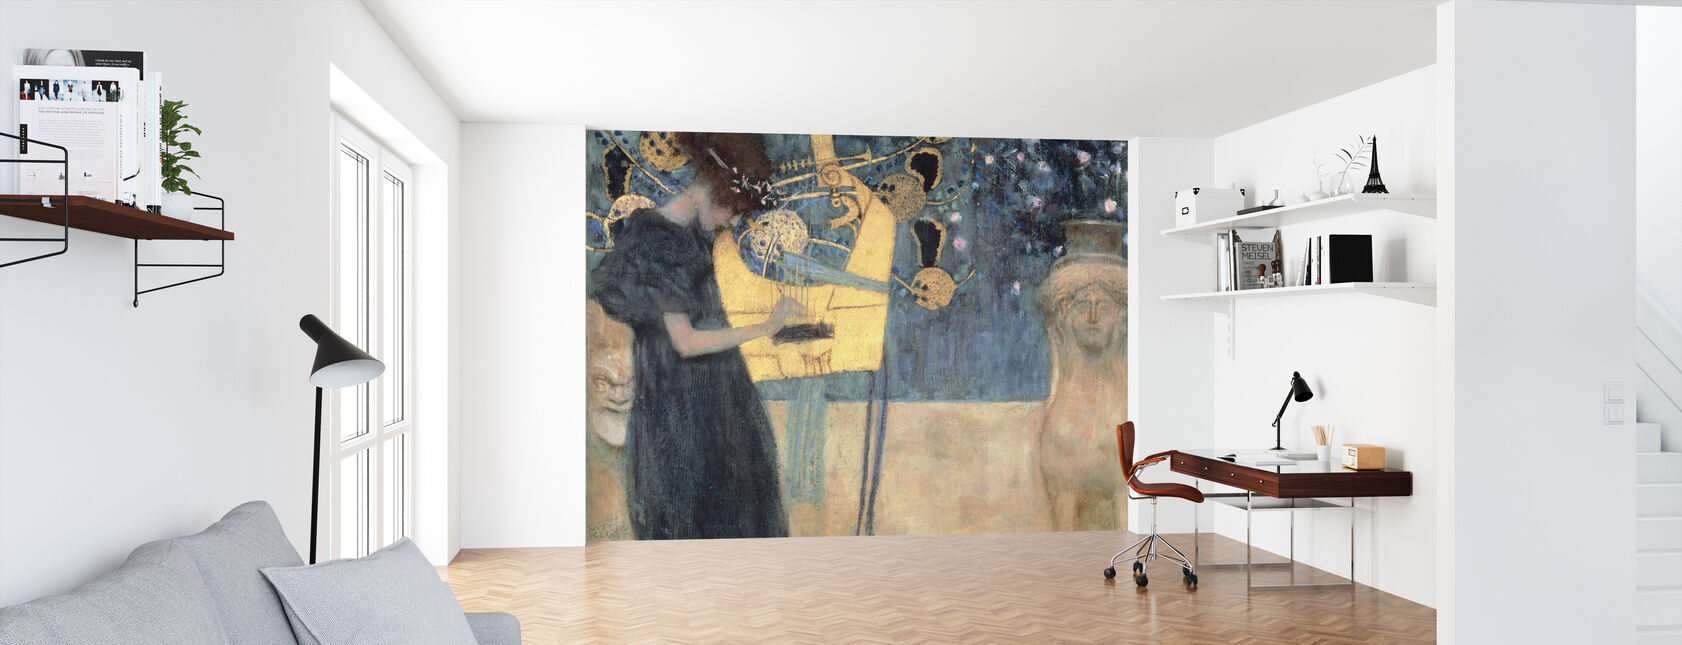 Klimt, Gustav - Music - Wallpaper - Office